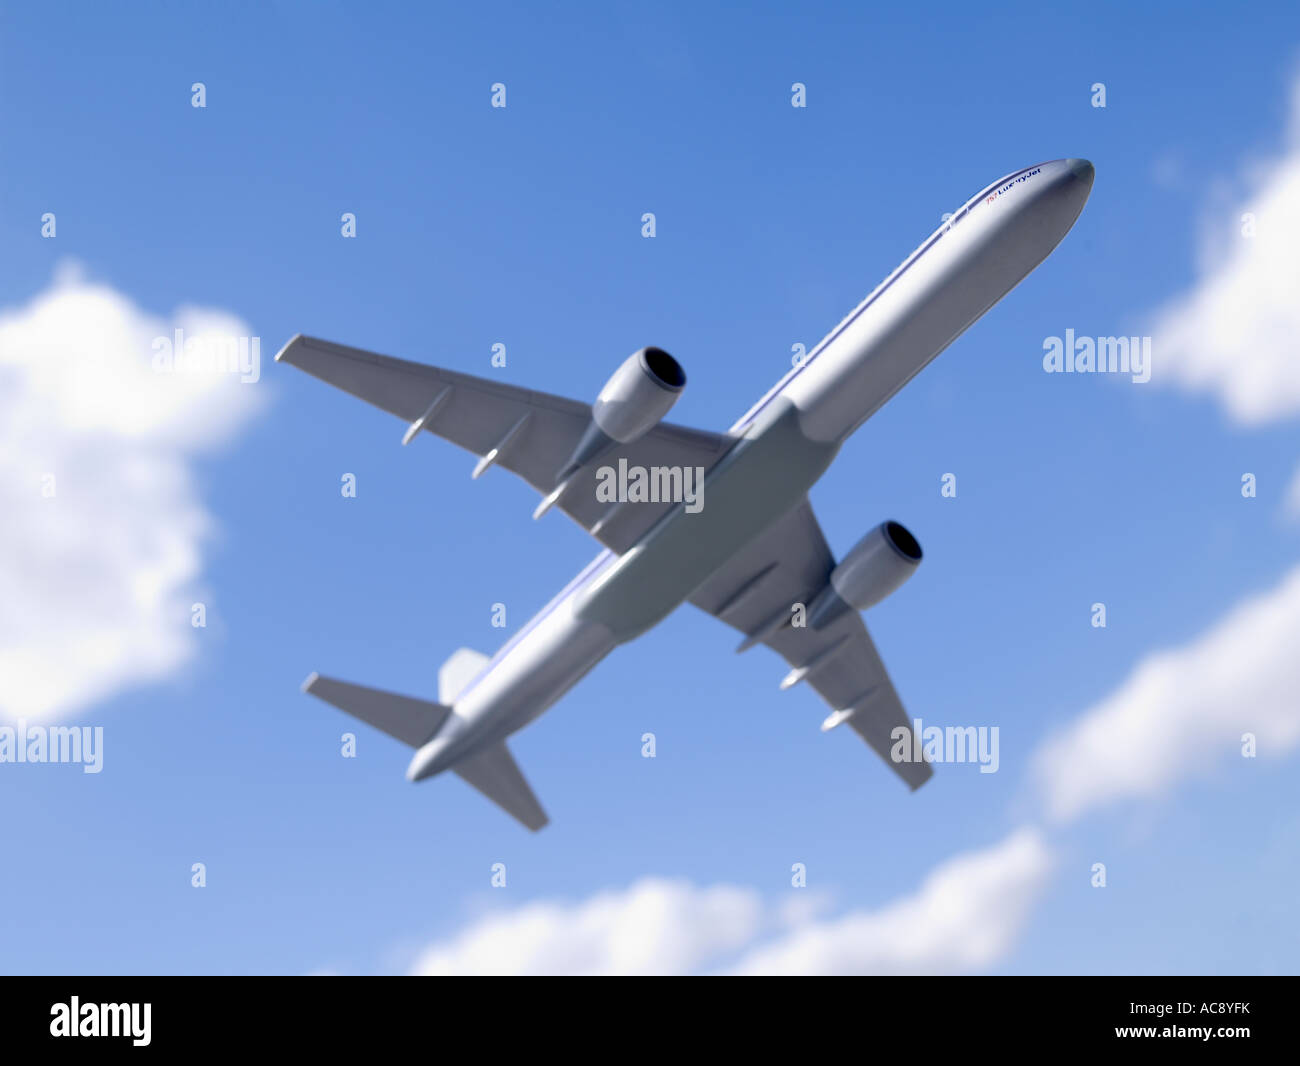 Airplane horizontal - Stock Image